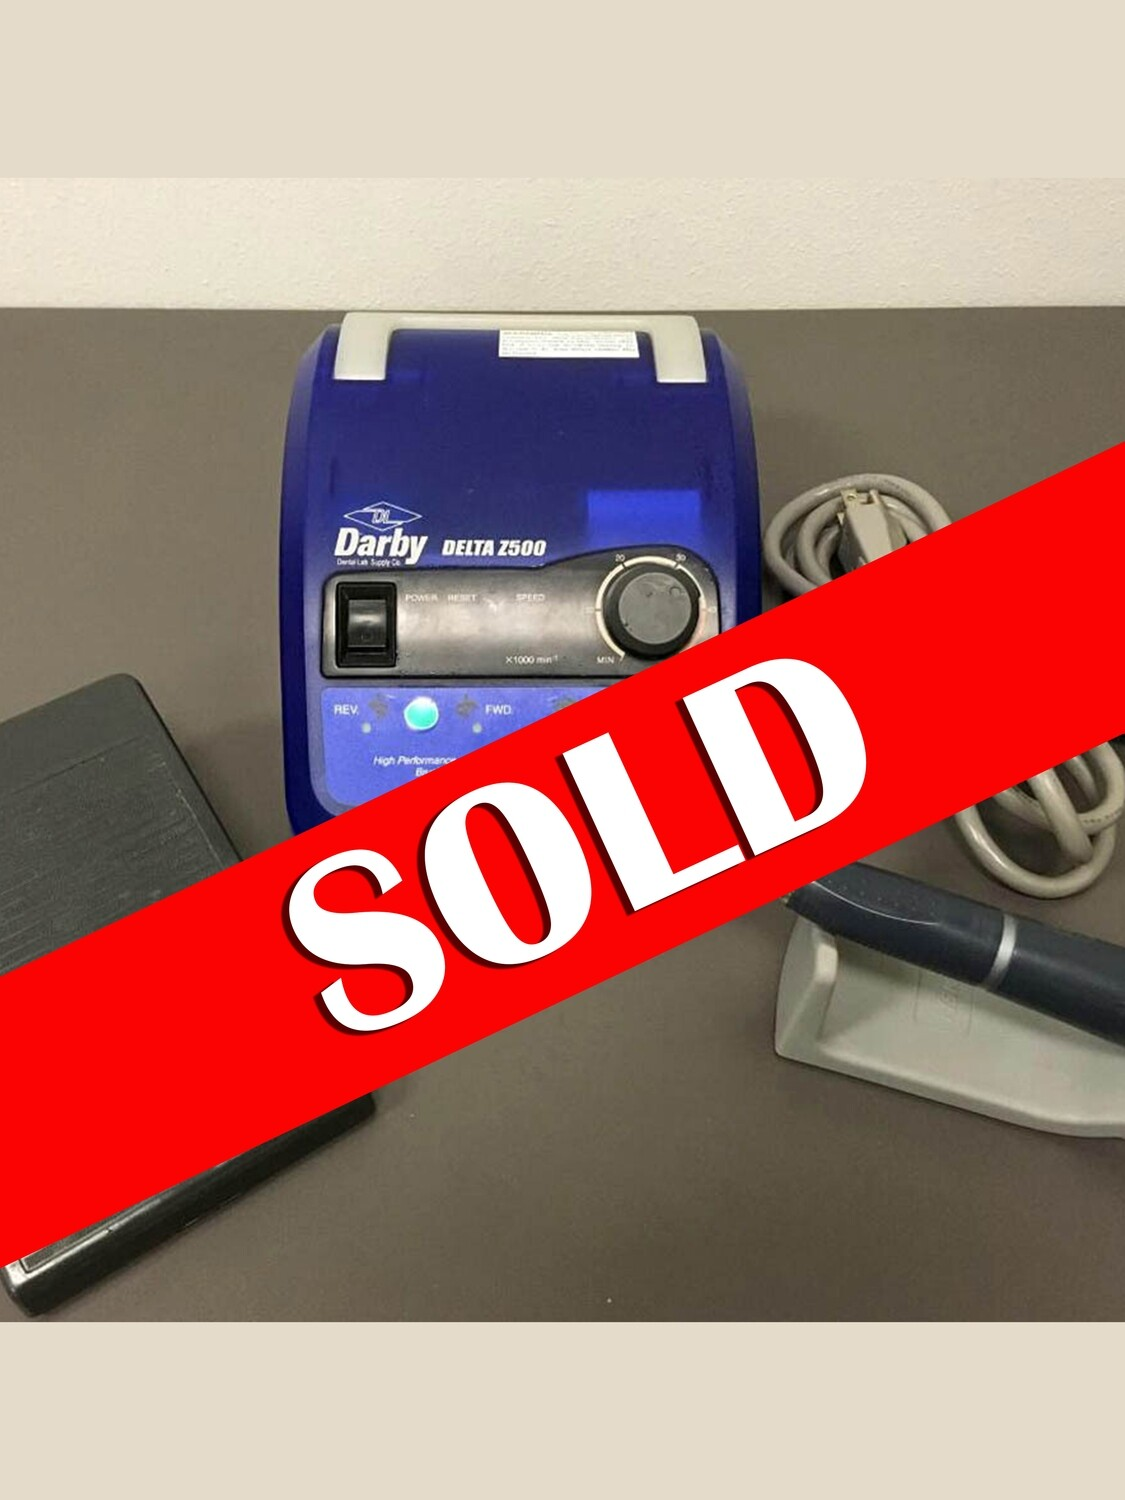 ** SOLD ** NSK (Darby) Ultimate Z500 Electric Lab Handpiece System